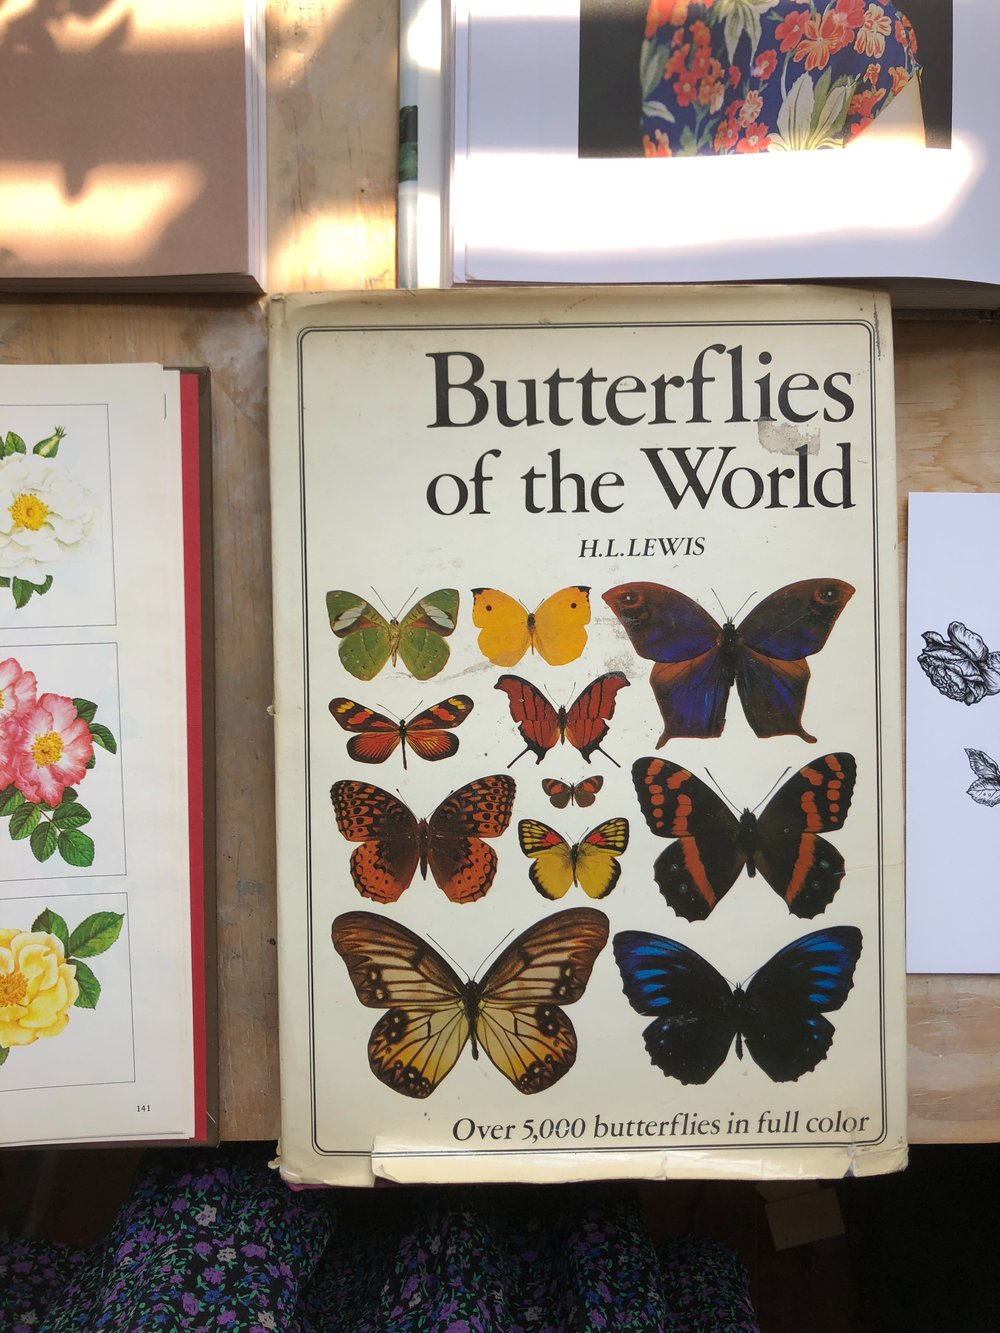 Butterflies, Dragonflies, spiders, ants   - I used the Butterfly Company because all of their specimens for sale are farm raised butterflies from around the world that died from natural causes.